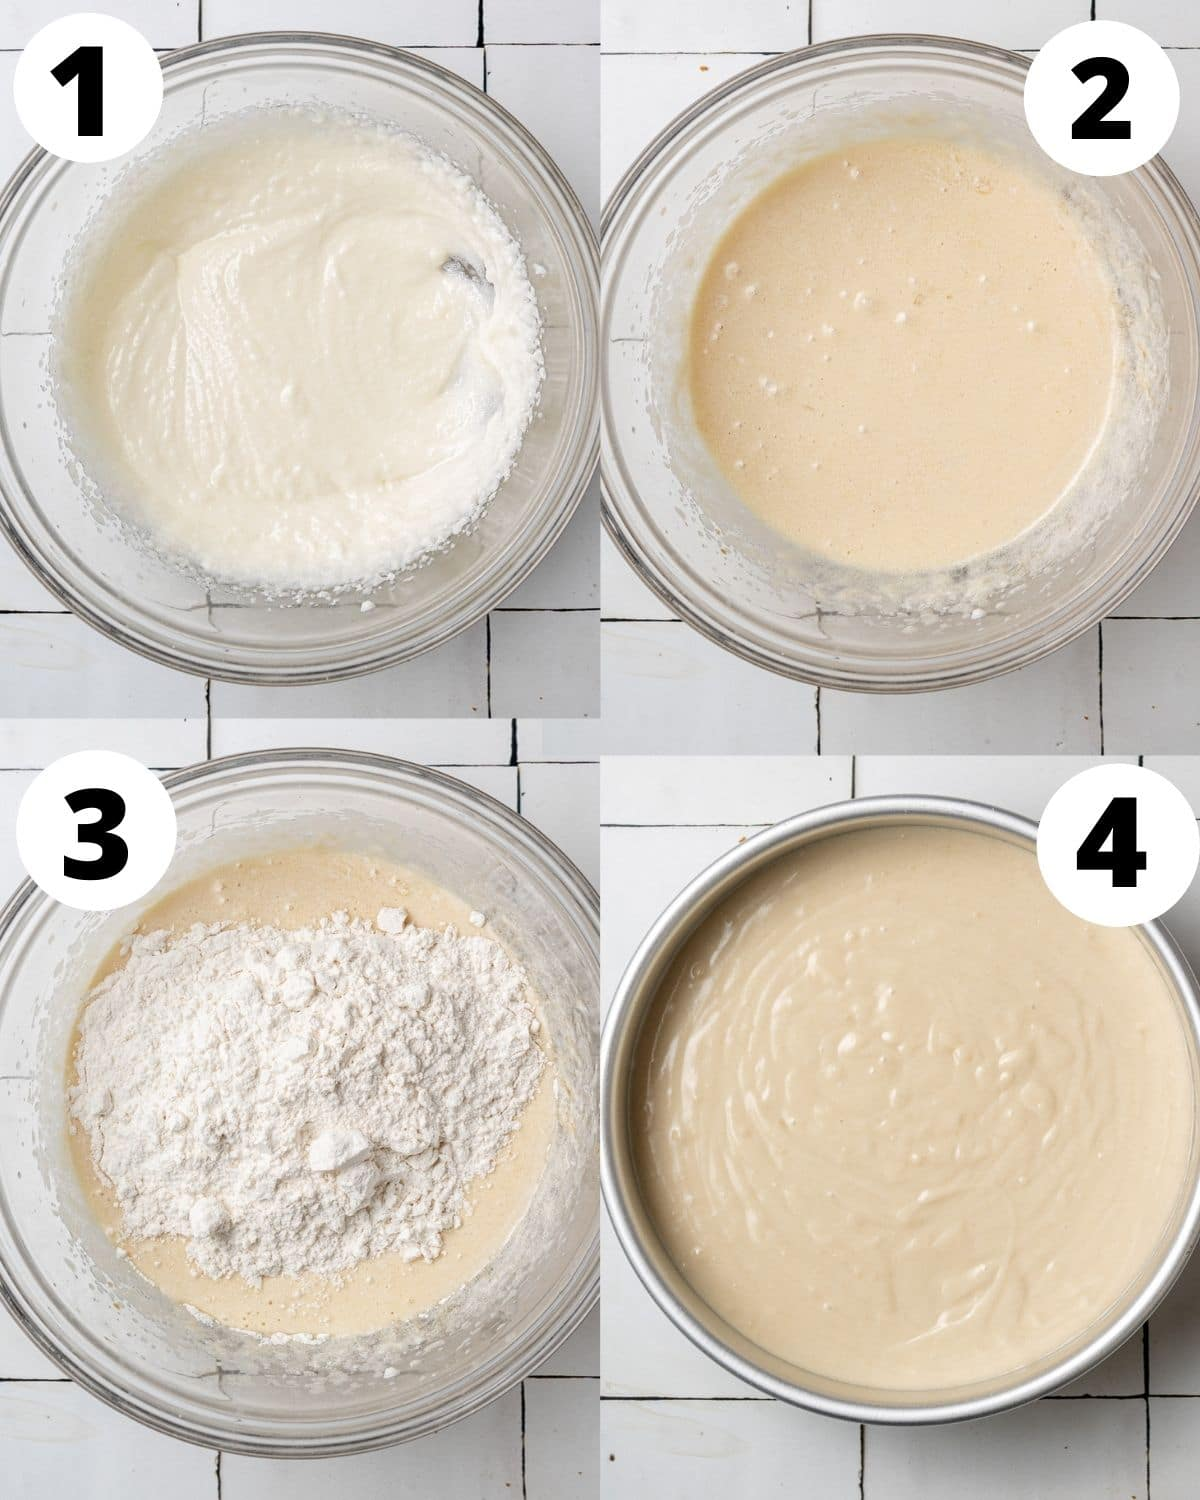 step by step instructions showing how to make biscoff cake